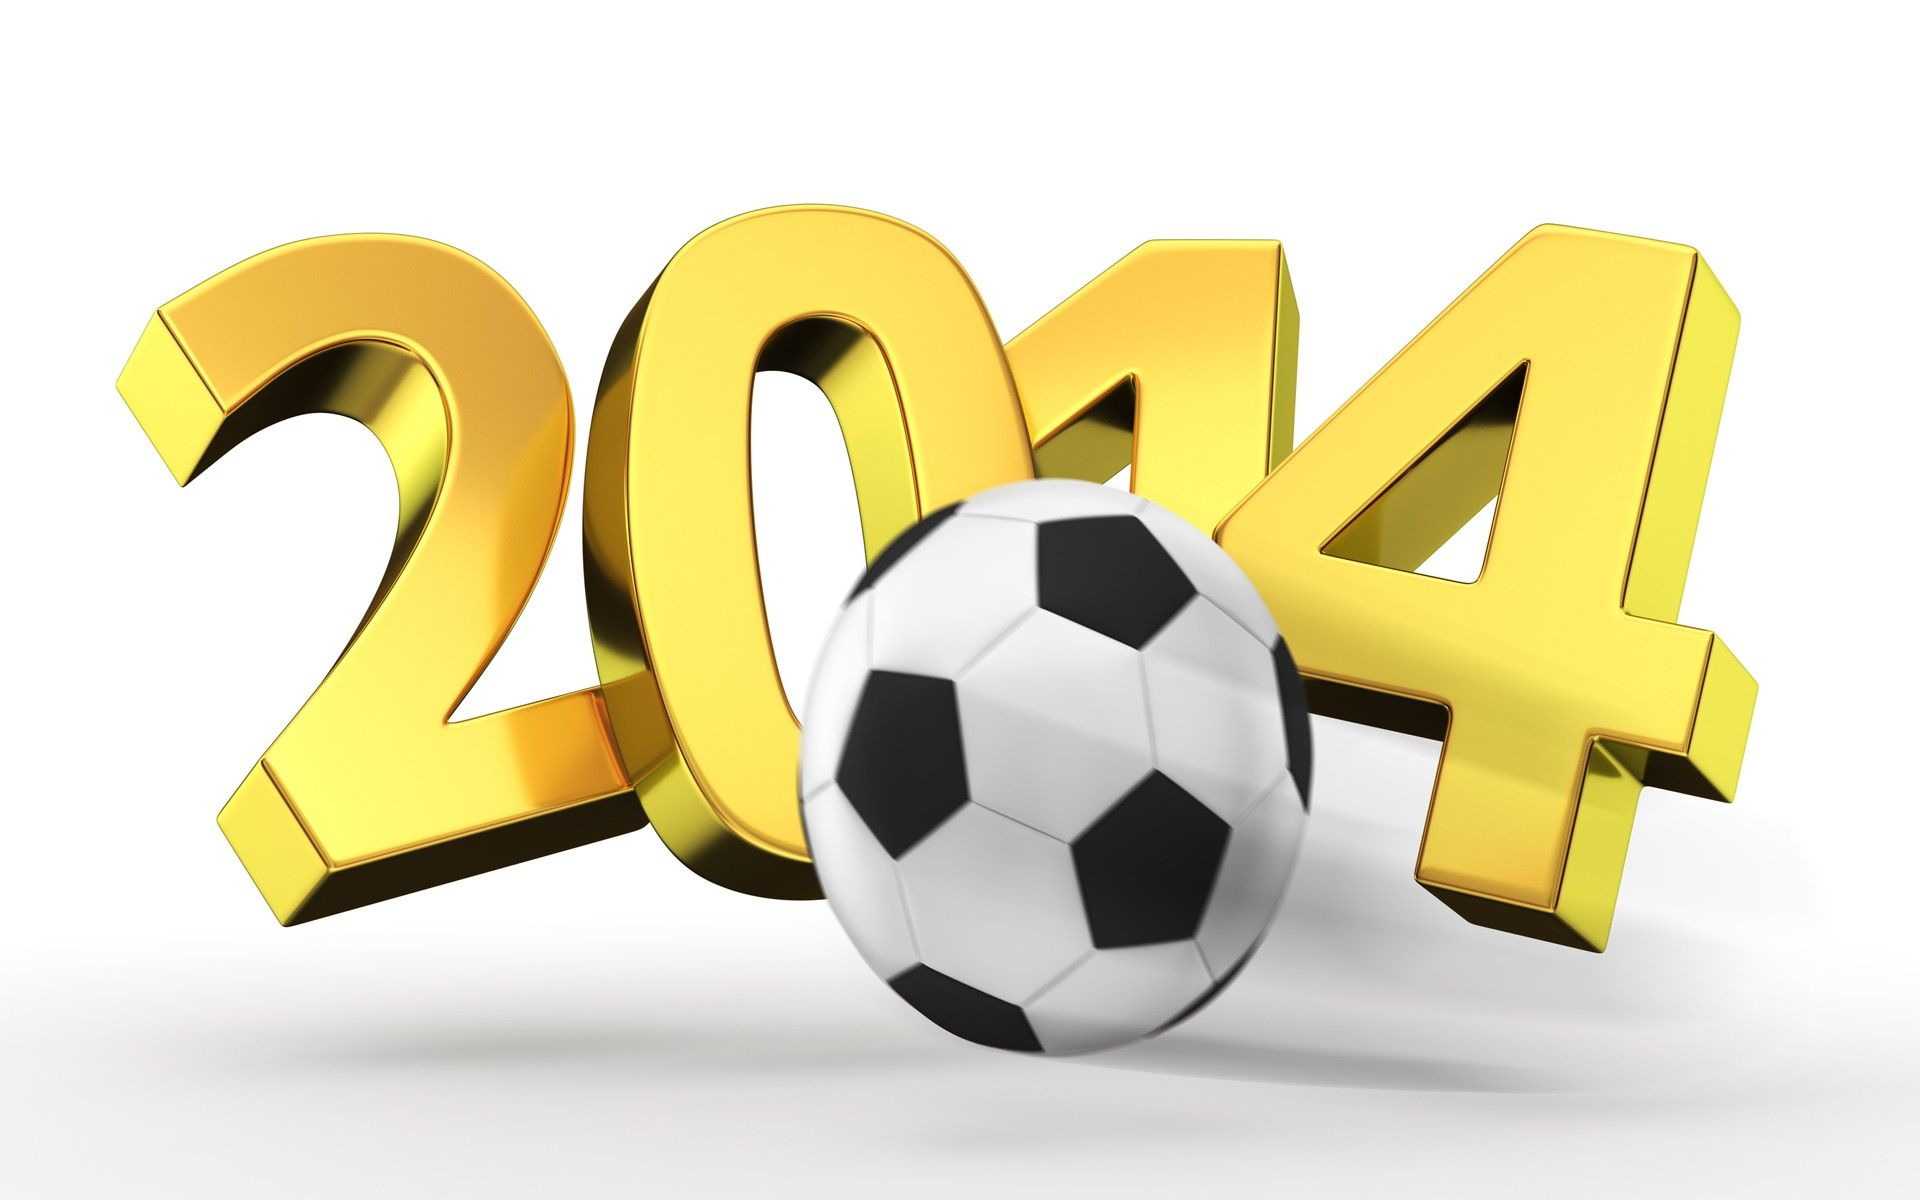 2014 new year wallpaper hd at http99hdwallpapernew 2014 new year wallpaper hd at http99hdwallpaper voltagebd Gallery